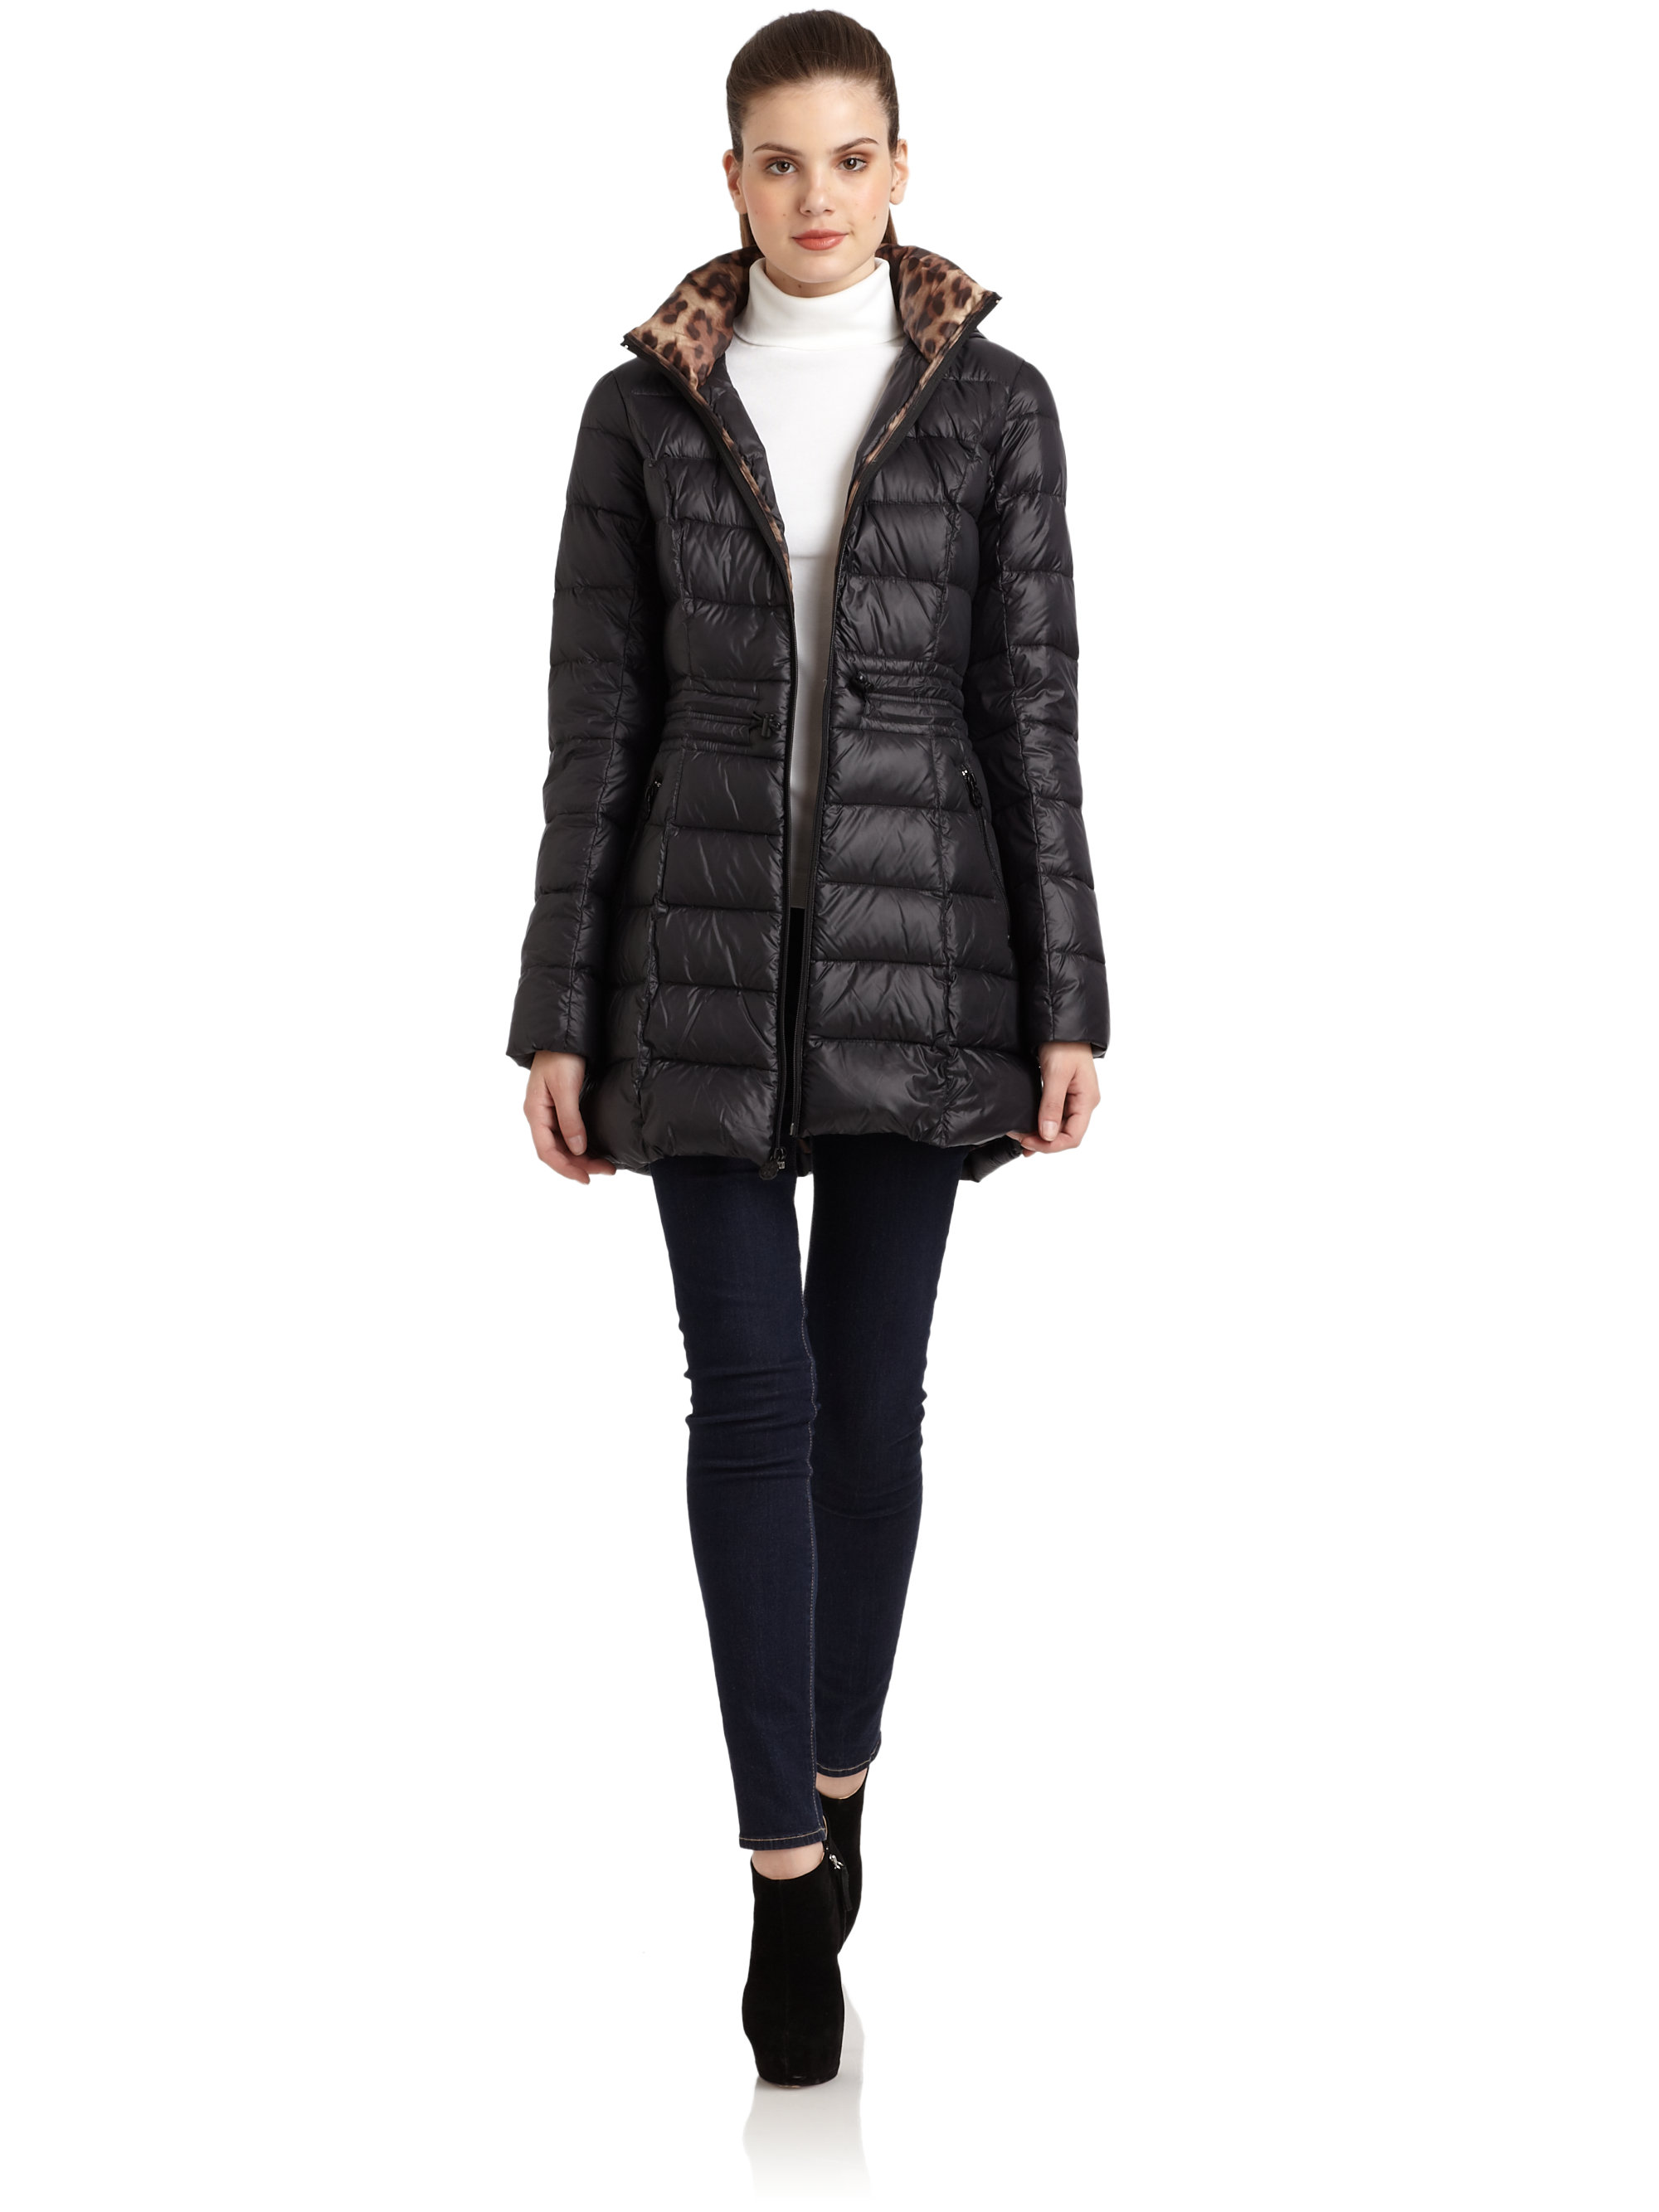 Laundry by shelli segal packable down coat in black lyst